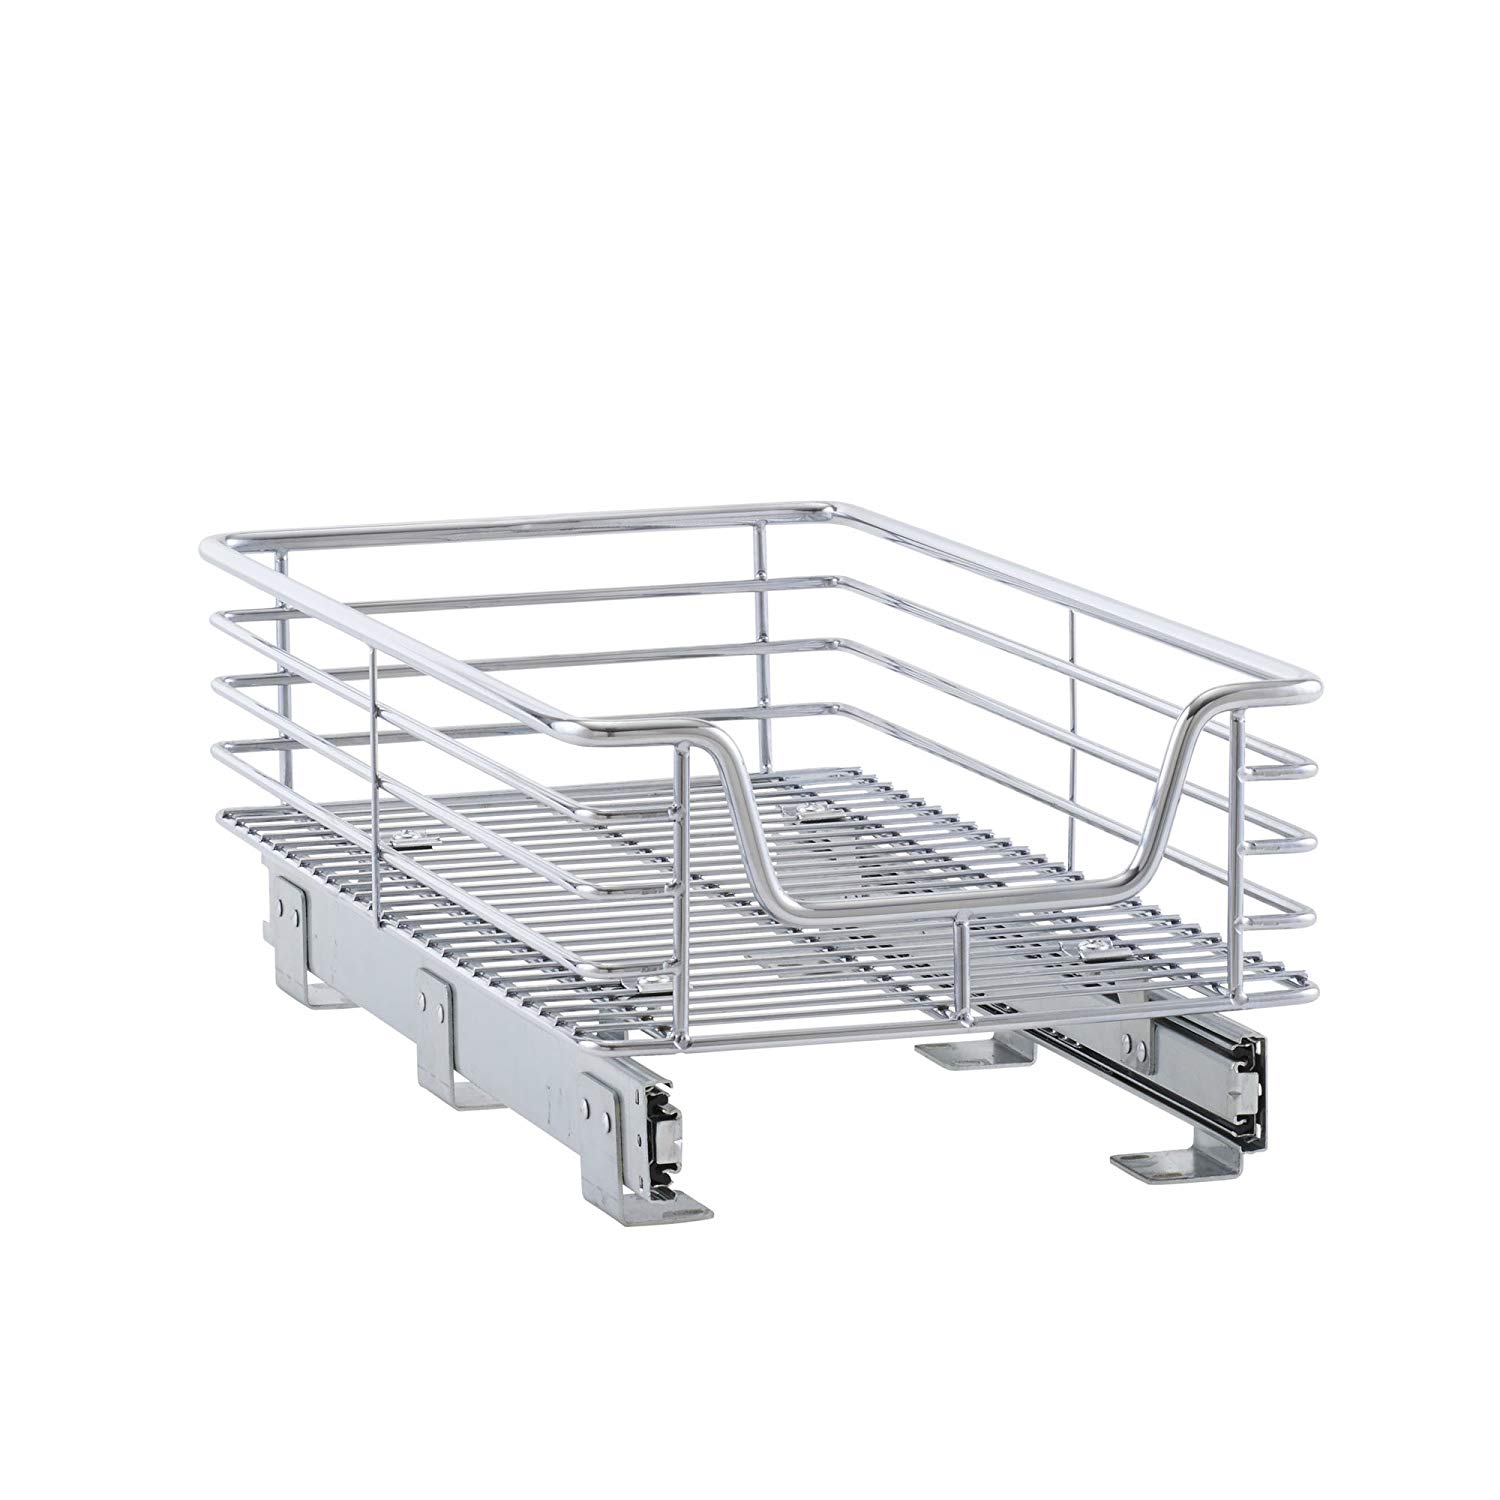 12 Inch x 21 Inch Chrome Slide-Out CabinetBasket